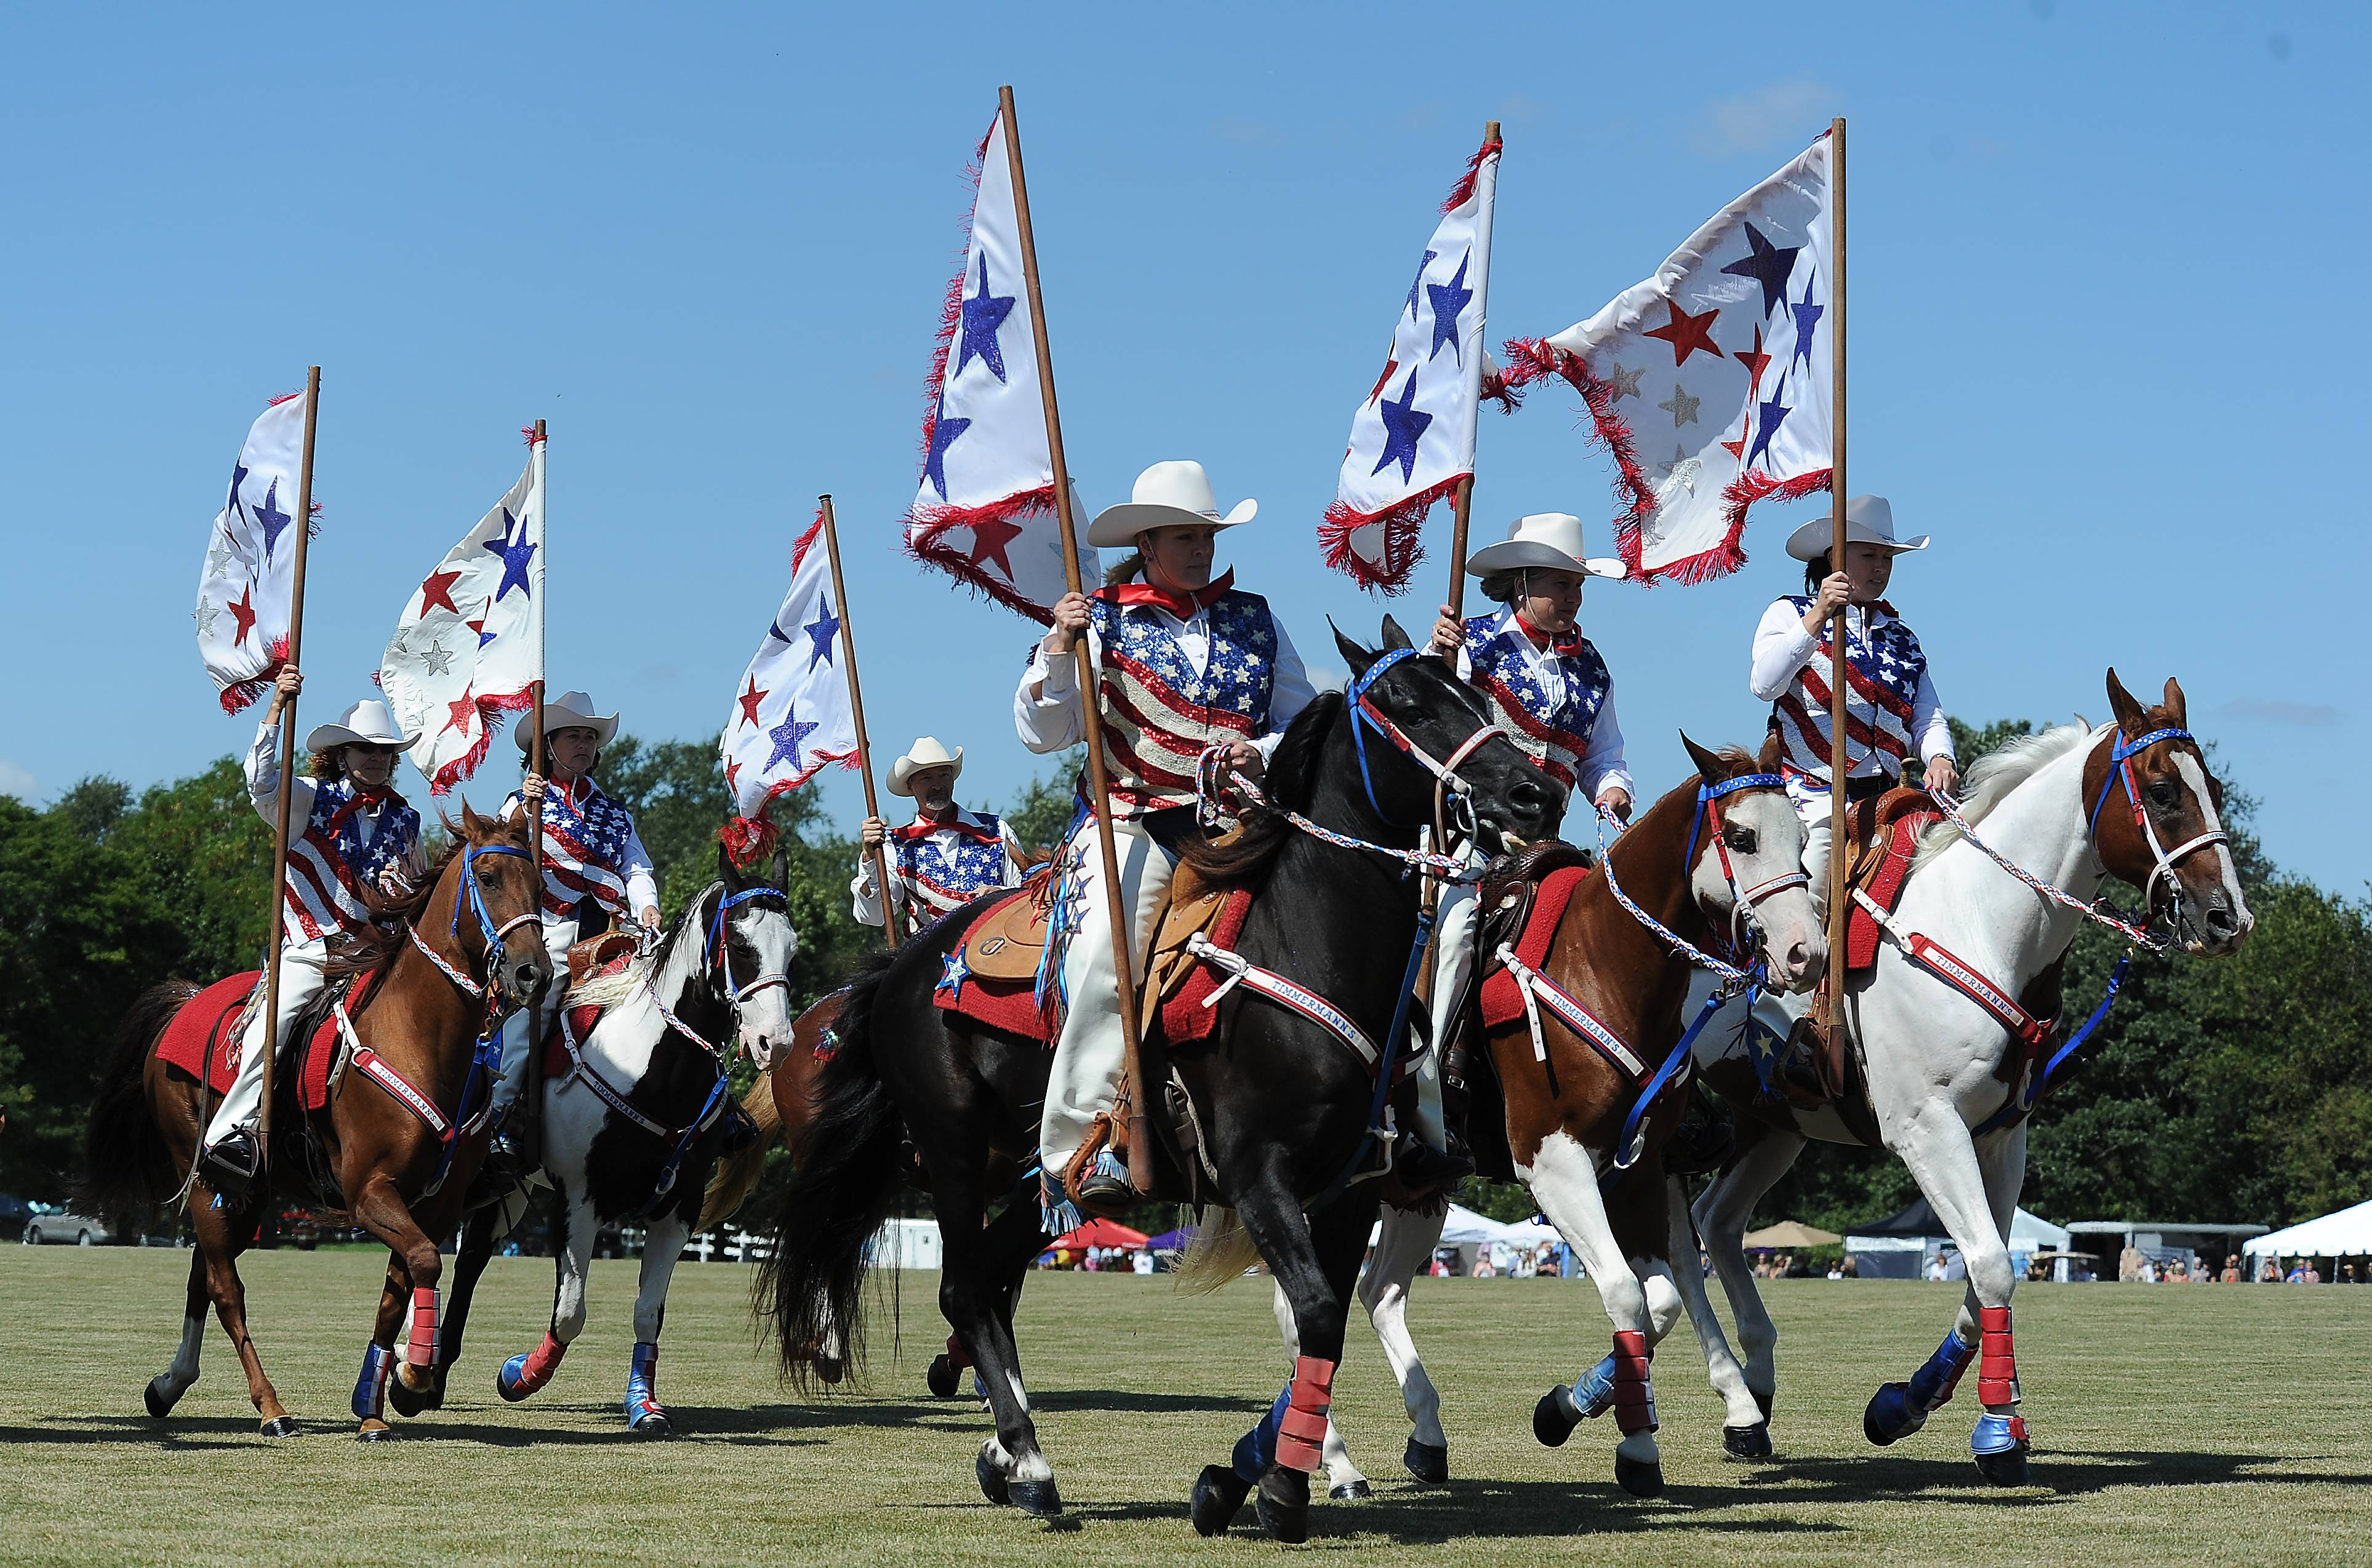 The Timmerman Mounted Drill Team will perform at the LeCompte Kalaway Trailowners Cup Polo Event in Barrington Hills.